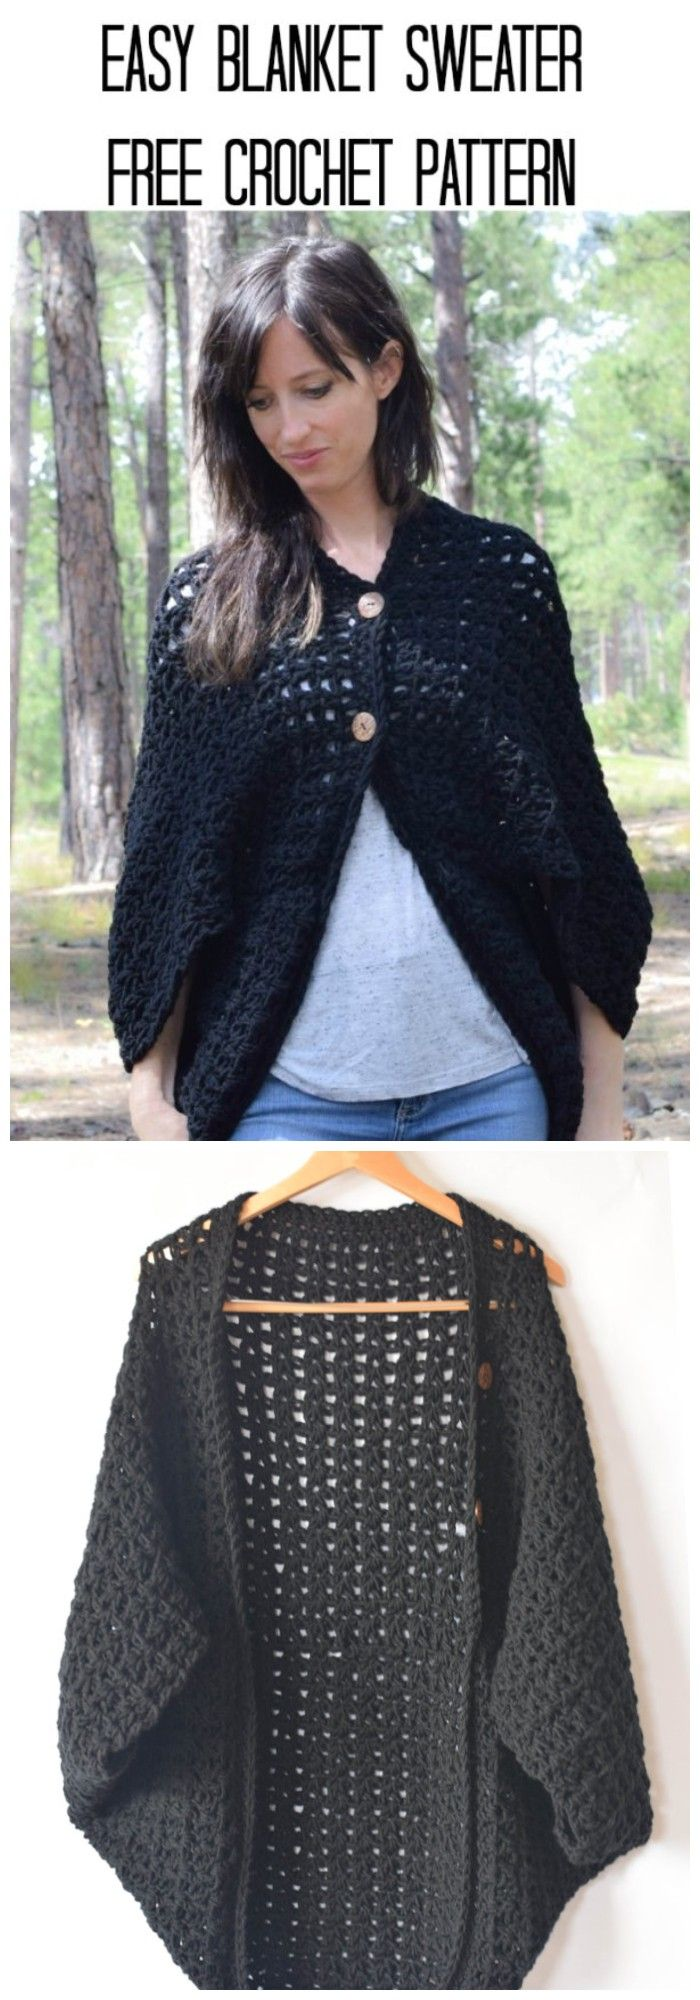 Cozy And Stylish Crochet Sweater - Patterns And Ideas #blanketsweater